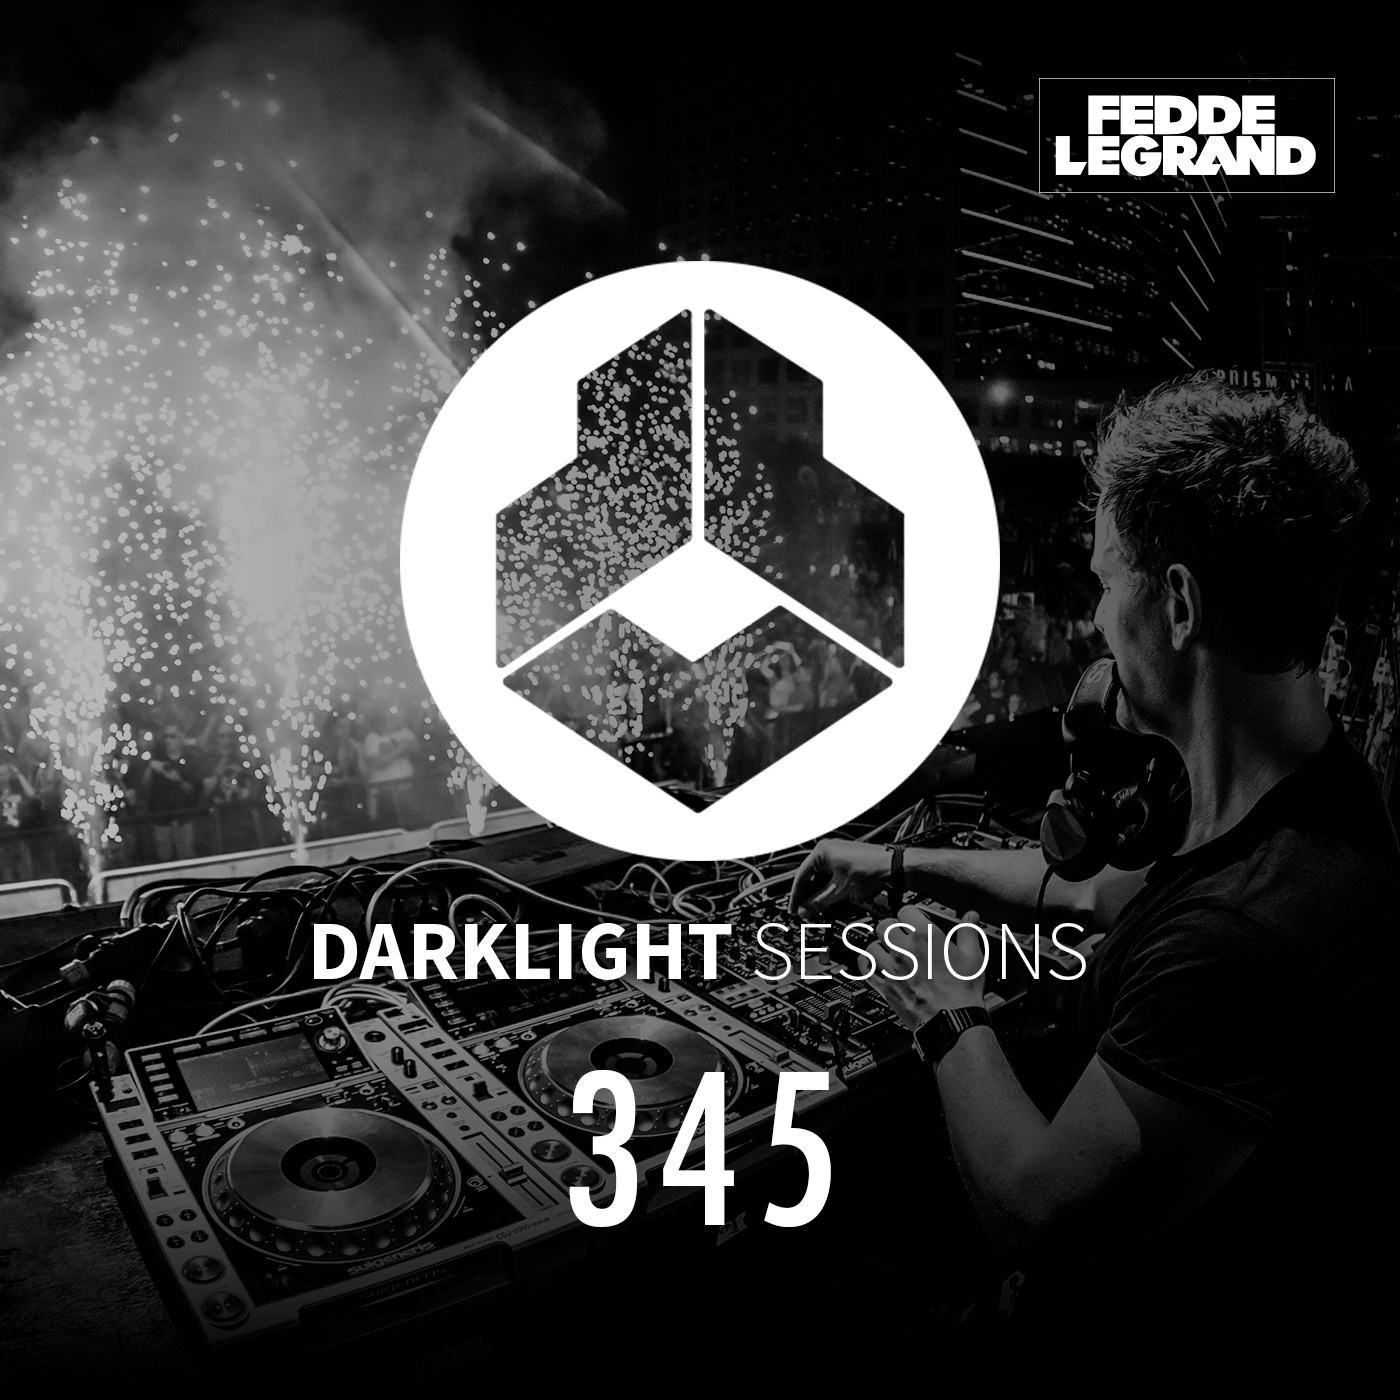 Darklight Sessions 345